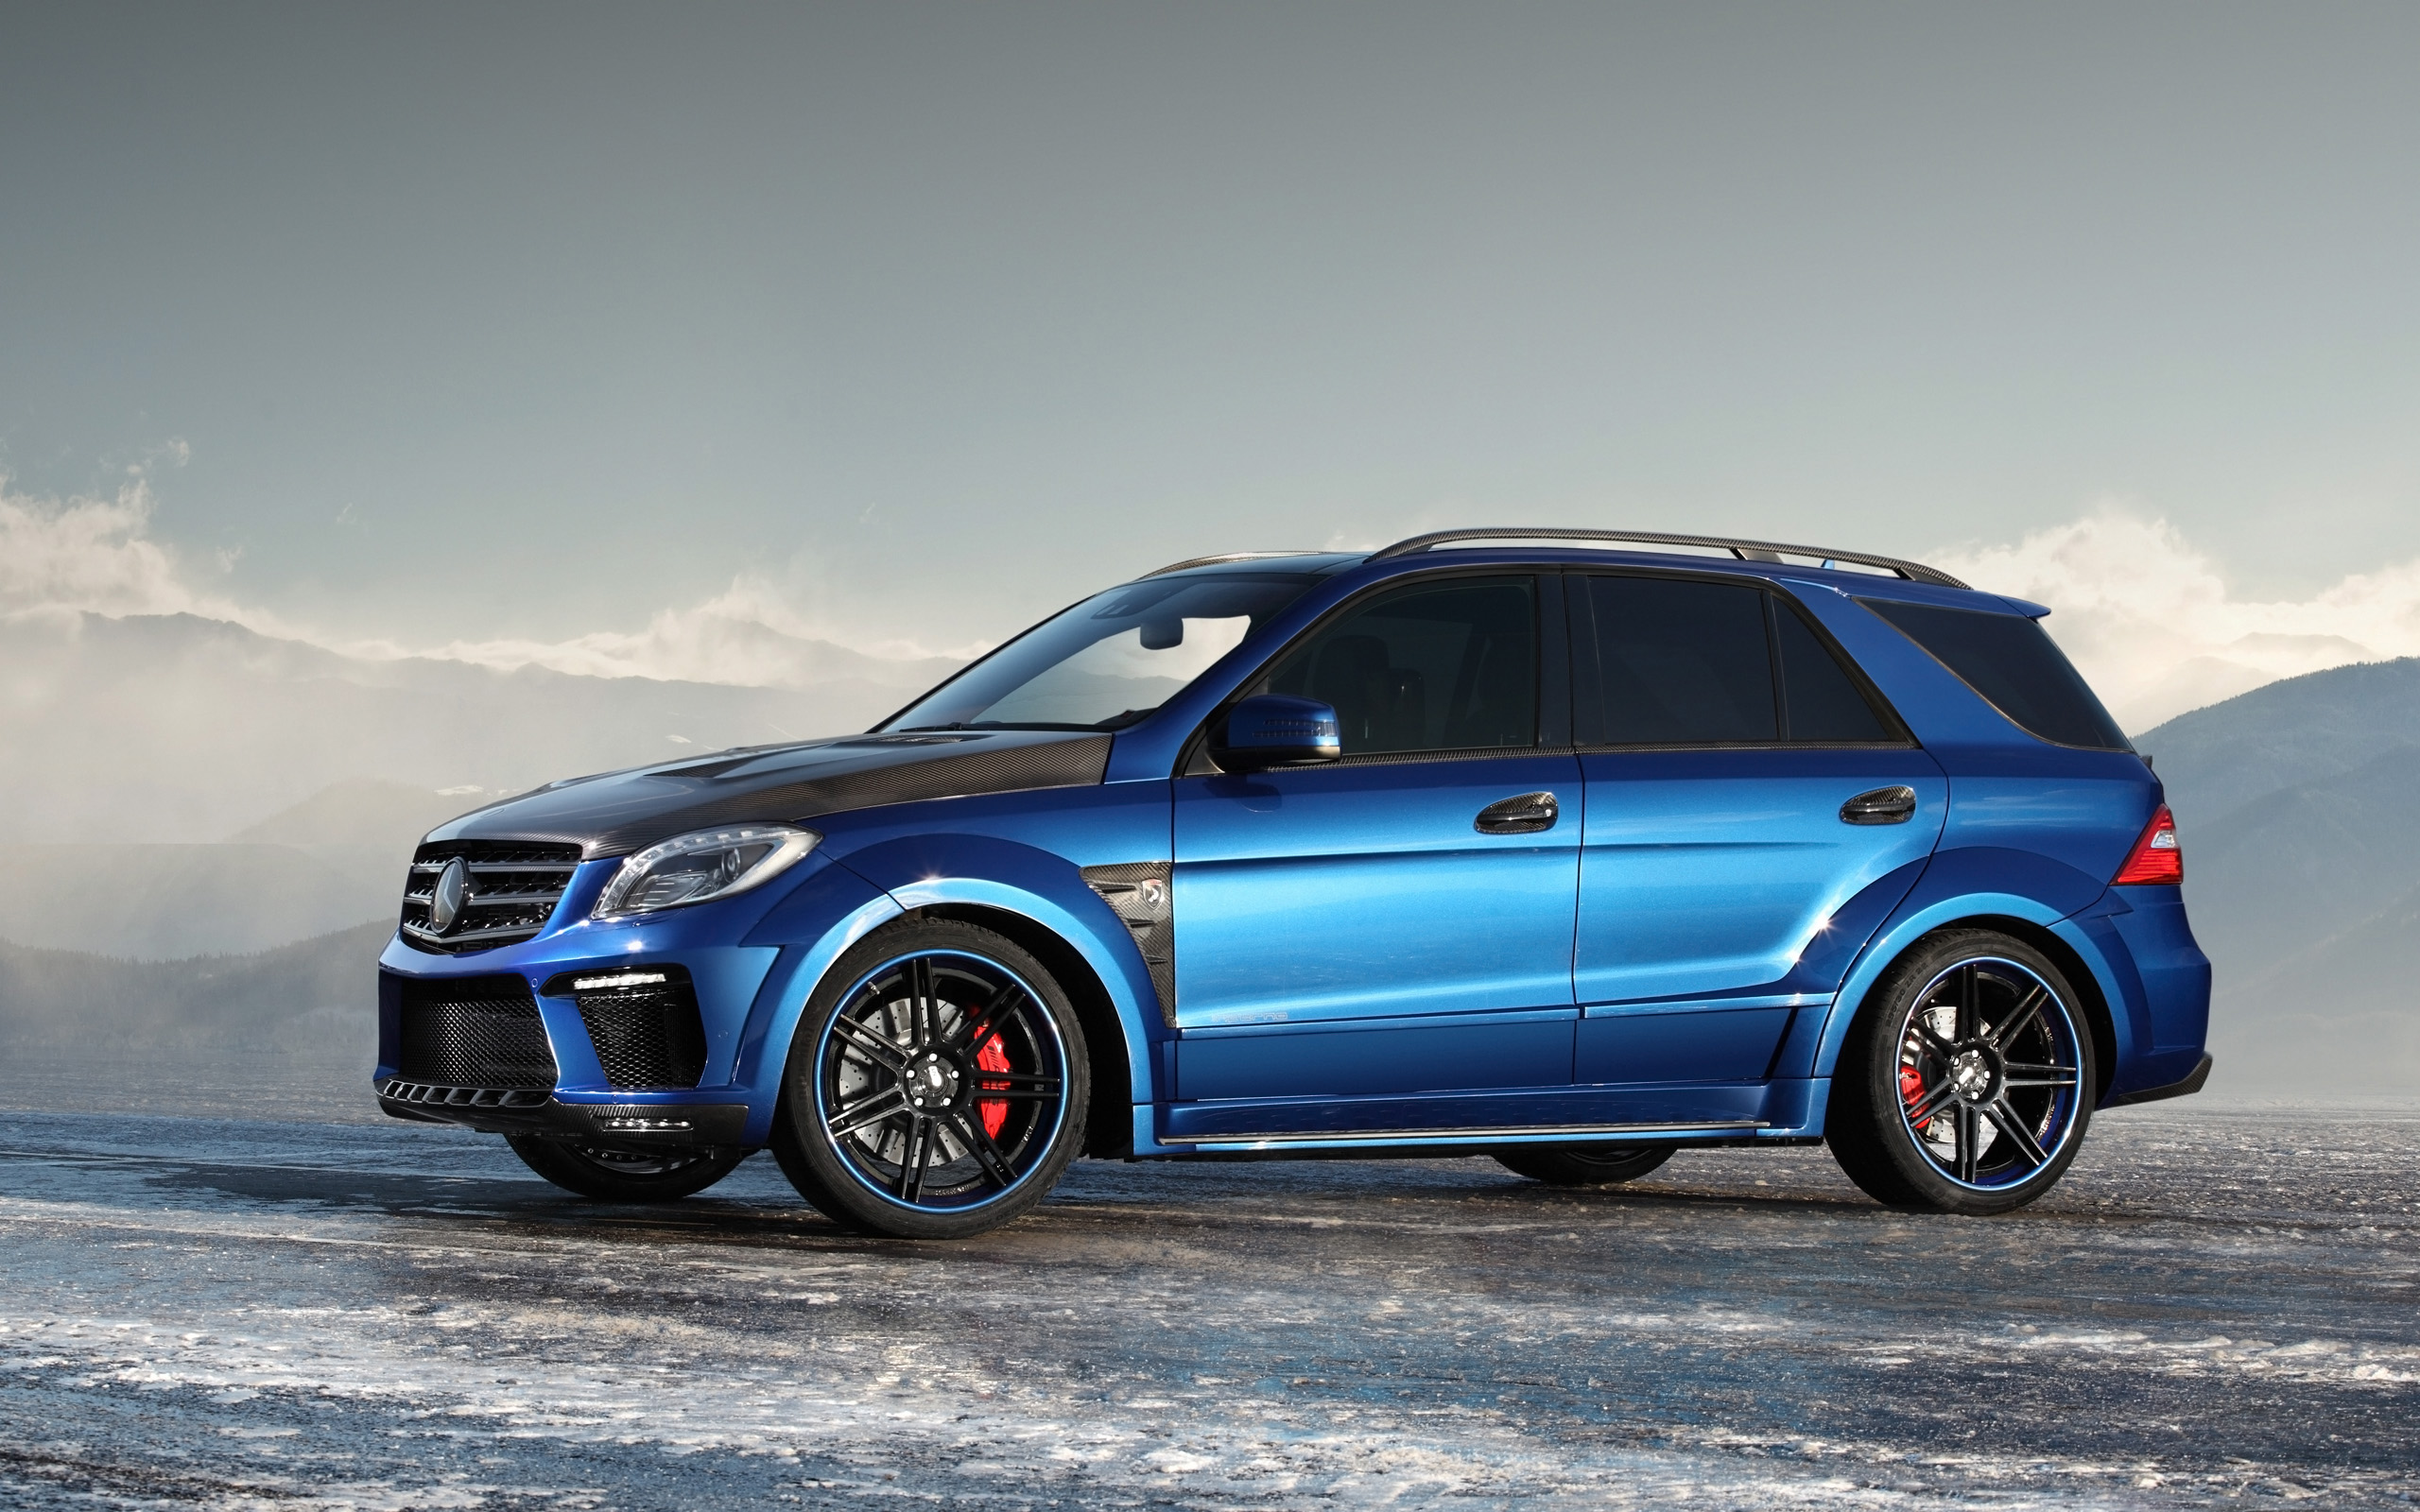 2013 topcar mercedes benz ml 63 amg inferno suv tuning h for 2013 mercedes benz ml